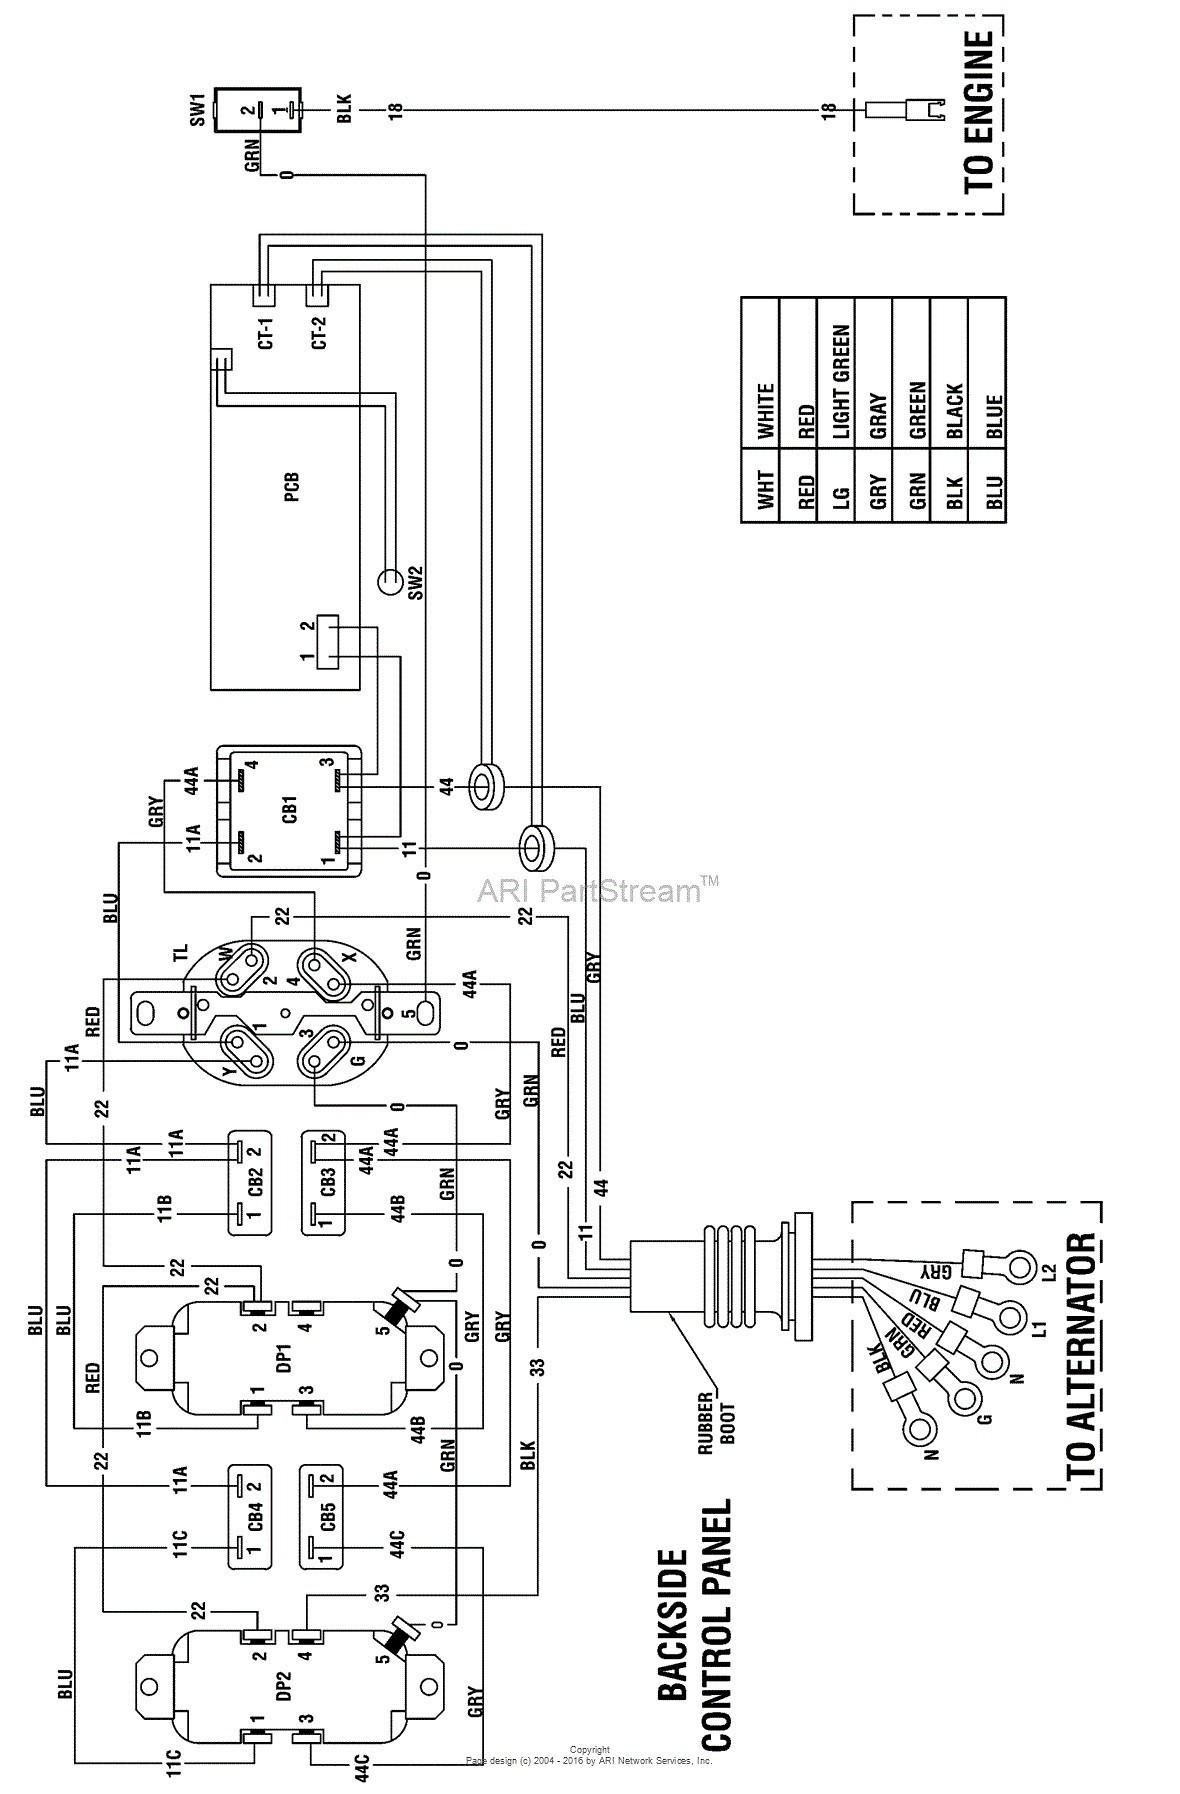 hight resolution of briggs and stratton 190707 ignition wiring diagram wiring diagram het 24 hp briggs and stratton wiring diagram